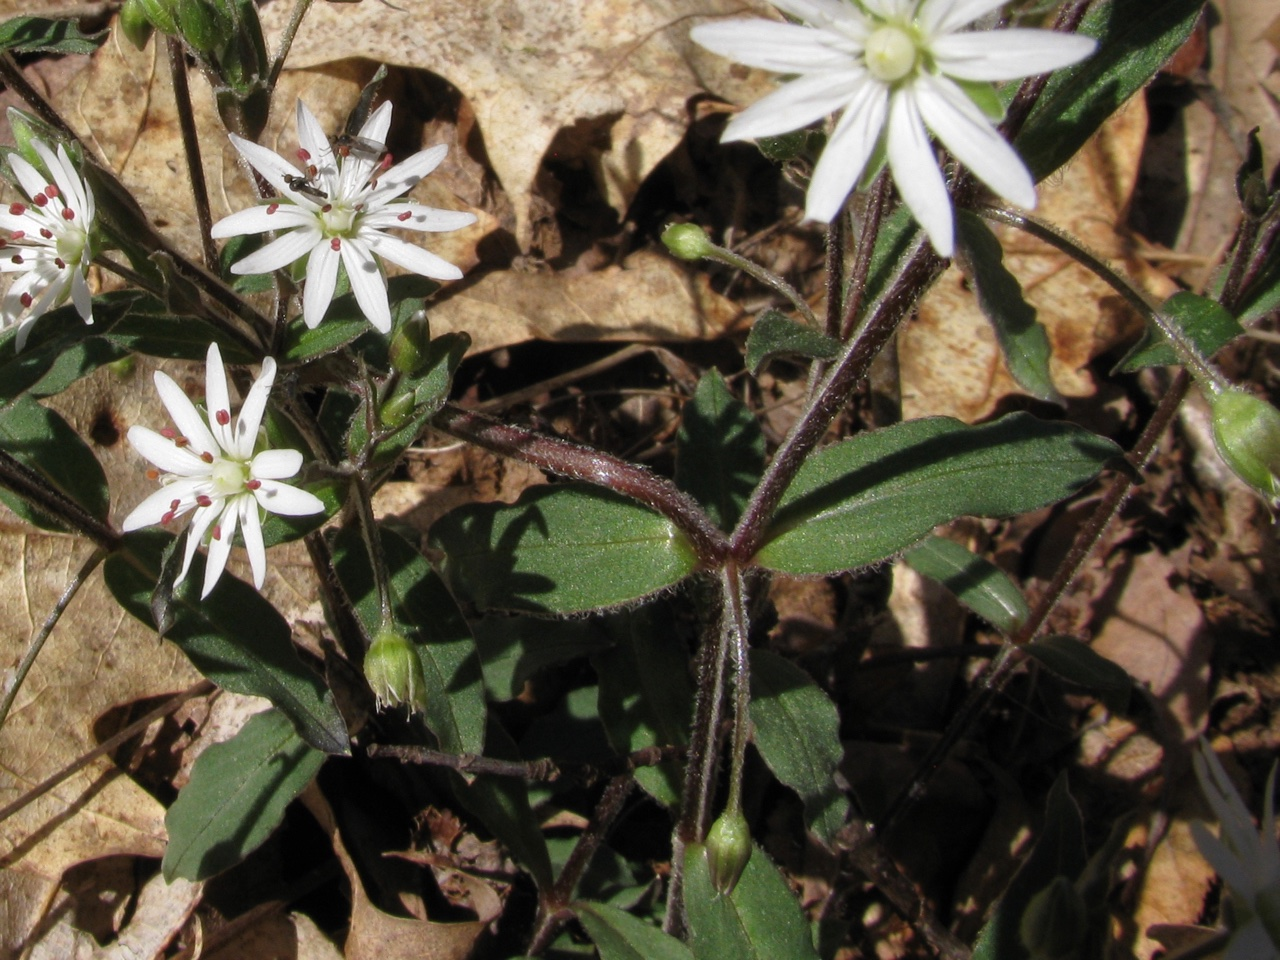 The Scientific Name is Stellaria pubera. You will likely hear them called Star Chickweed, Common Starwort, Giant Chickweed, Great Chickweed.. This picture shows the Notice the hair covered stems and leaves as the specific epithet